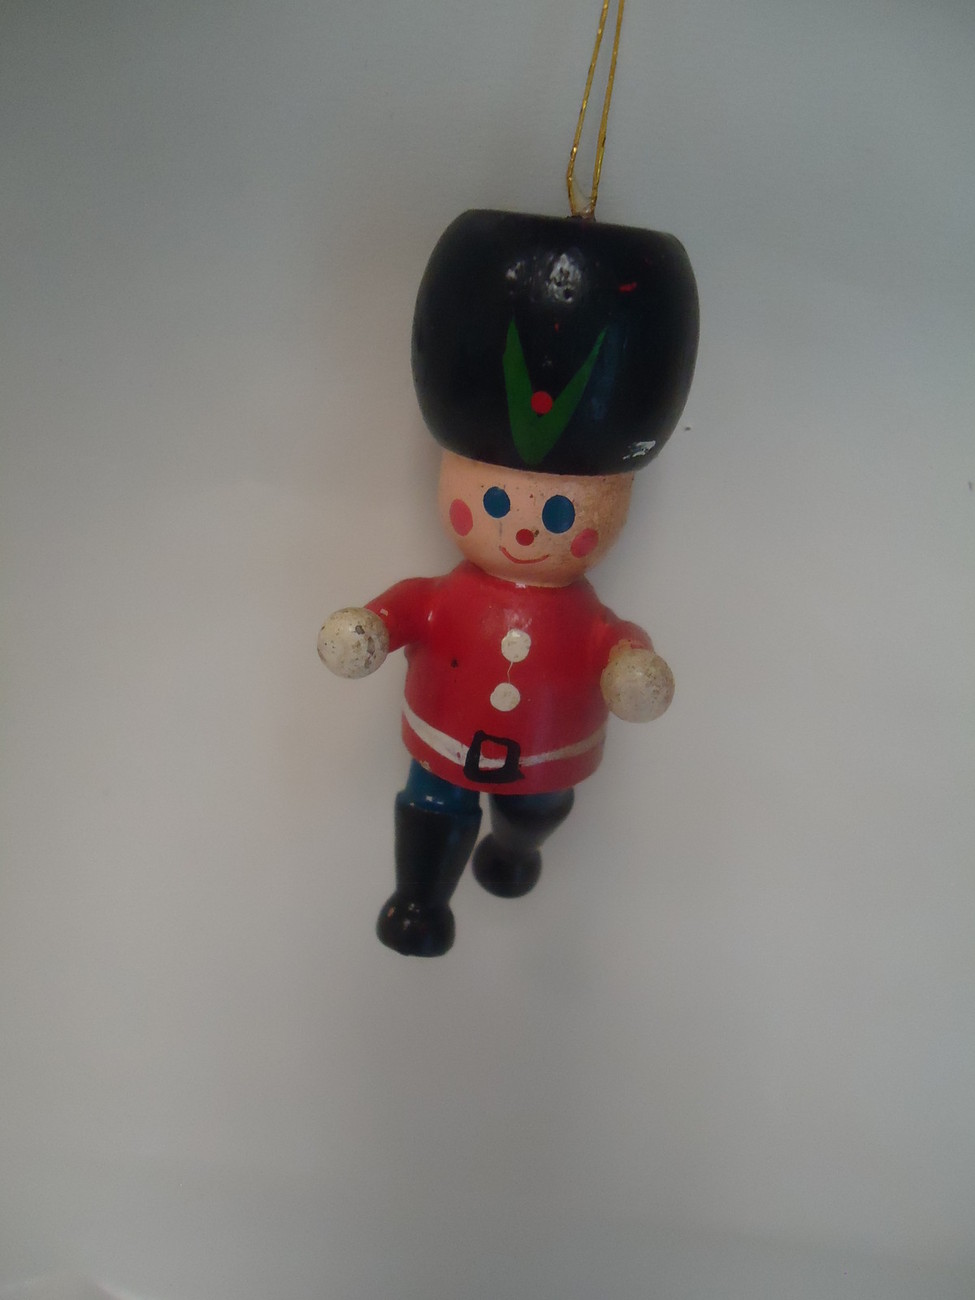 Retro Christmas Toy : Vintage wooden christmas decor toy soldier